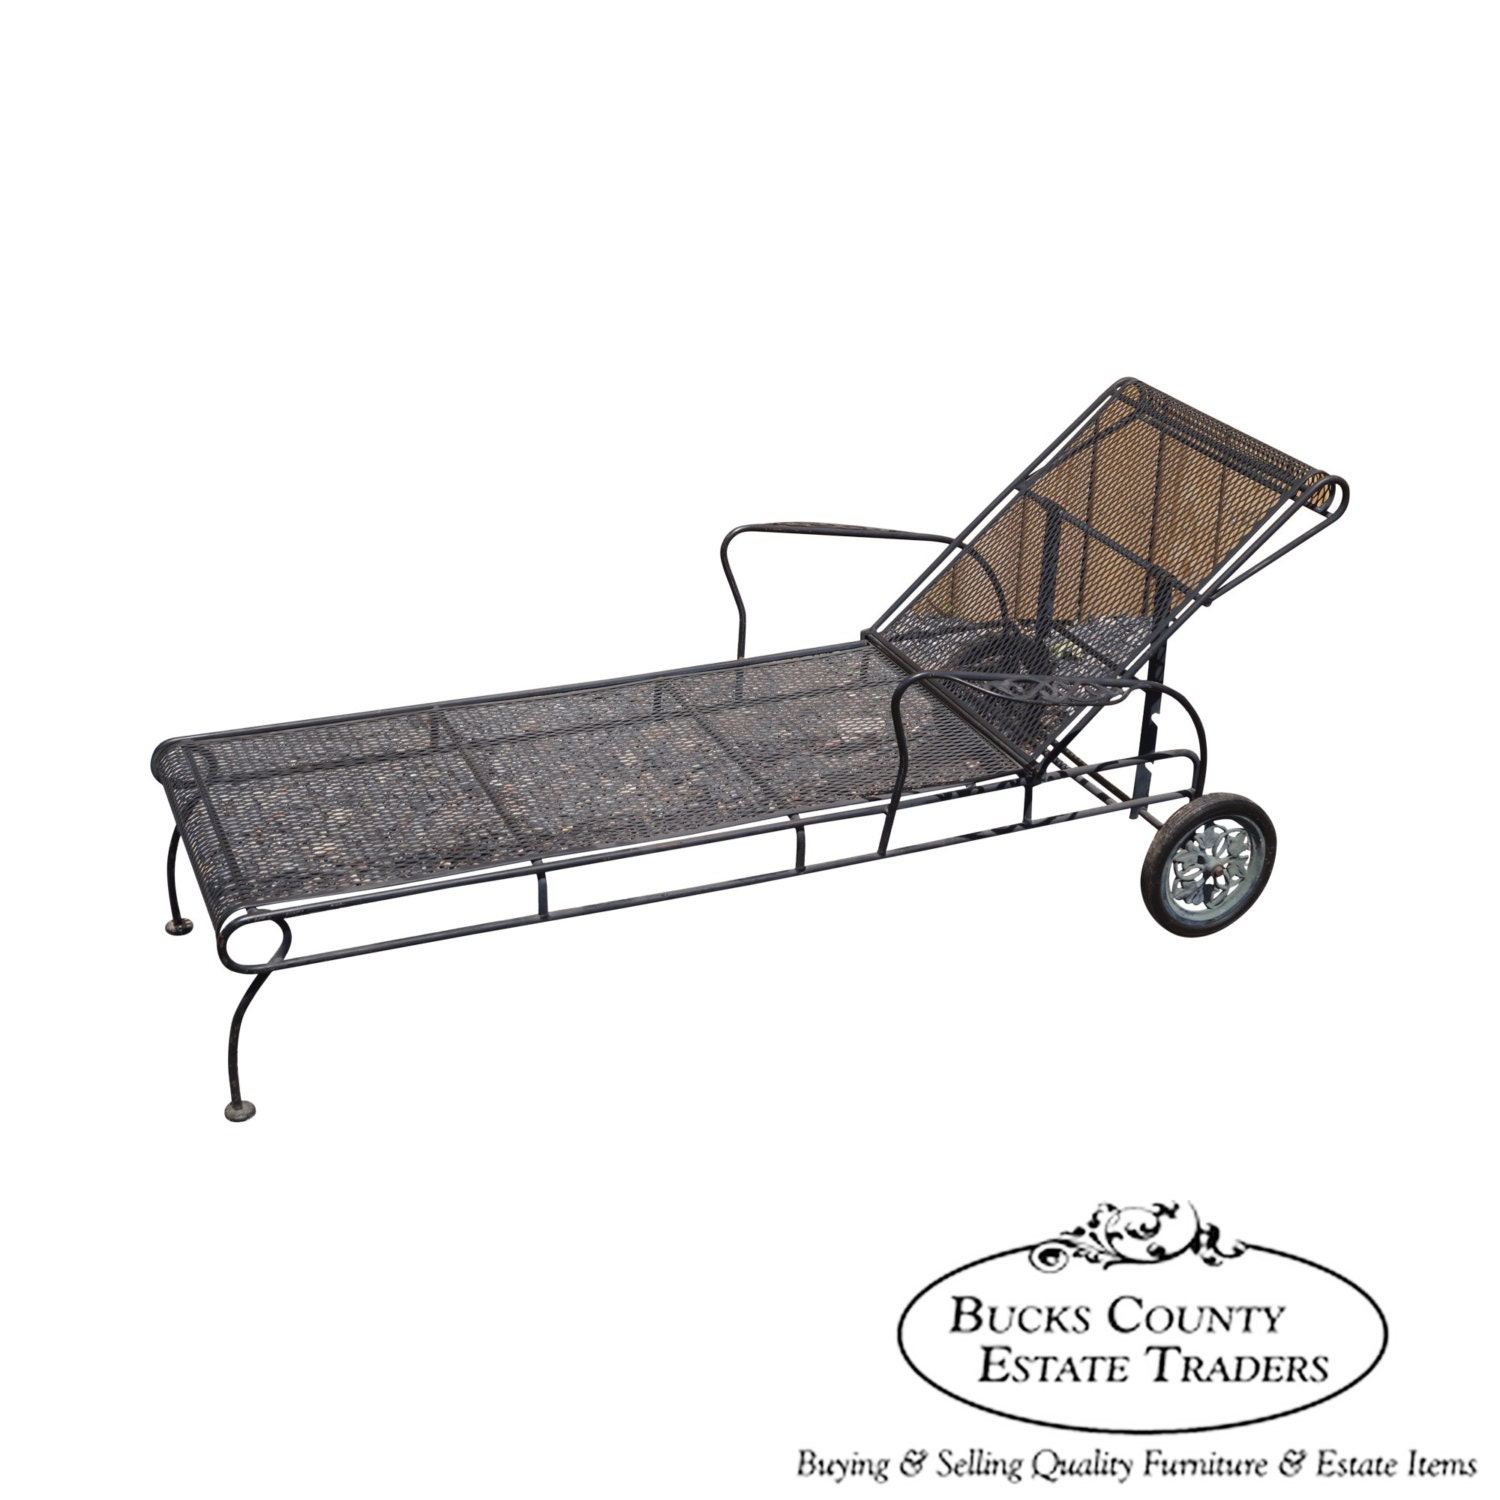 vintage expanded metal iron patio chaise by bucksestatetraders. Black Bedroom Furniture Sets. Home Design Ideas